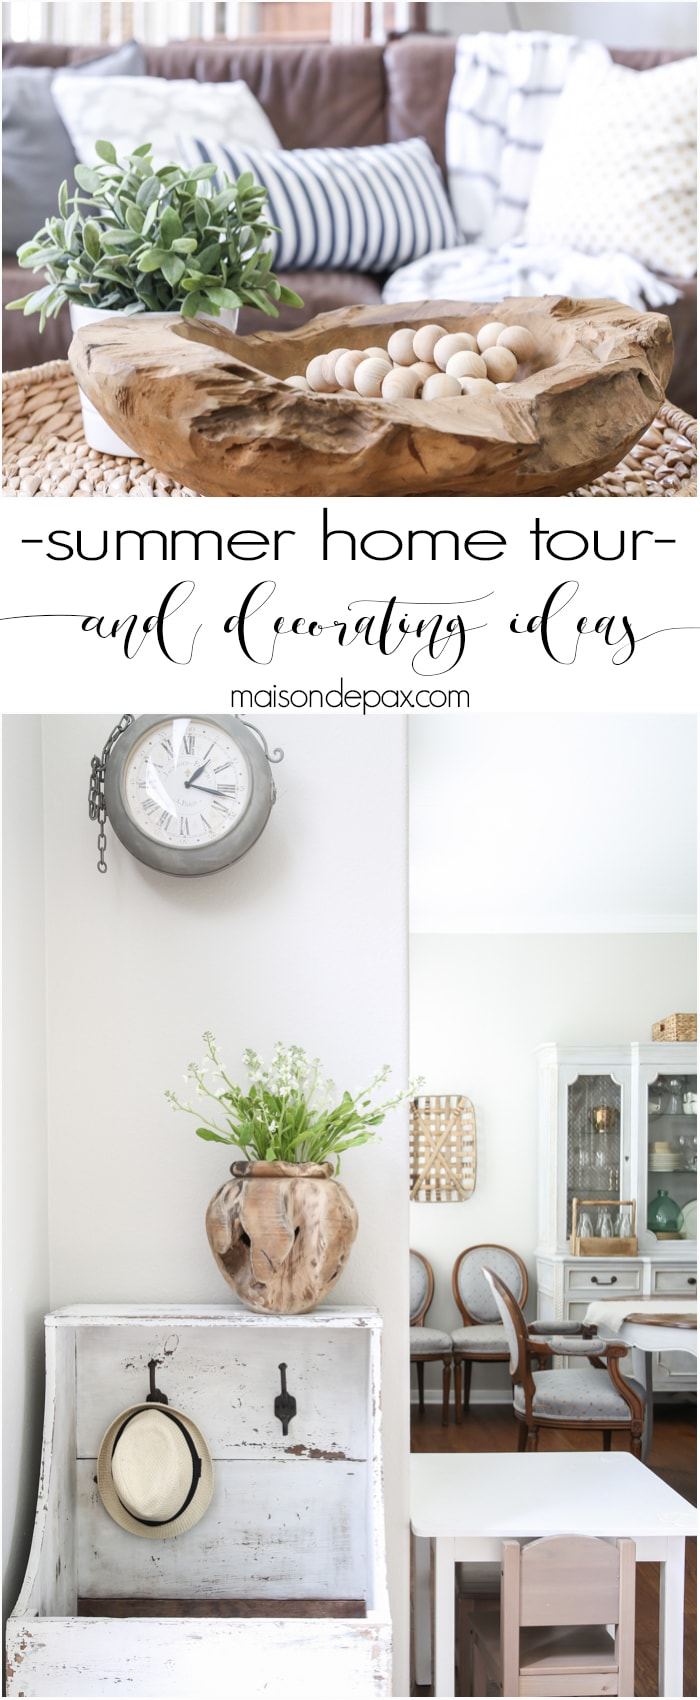 Beautiful summer home tour with lots of whites, raw wood tones, and simple decorating ideas